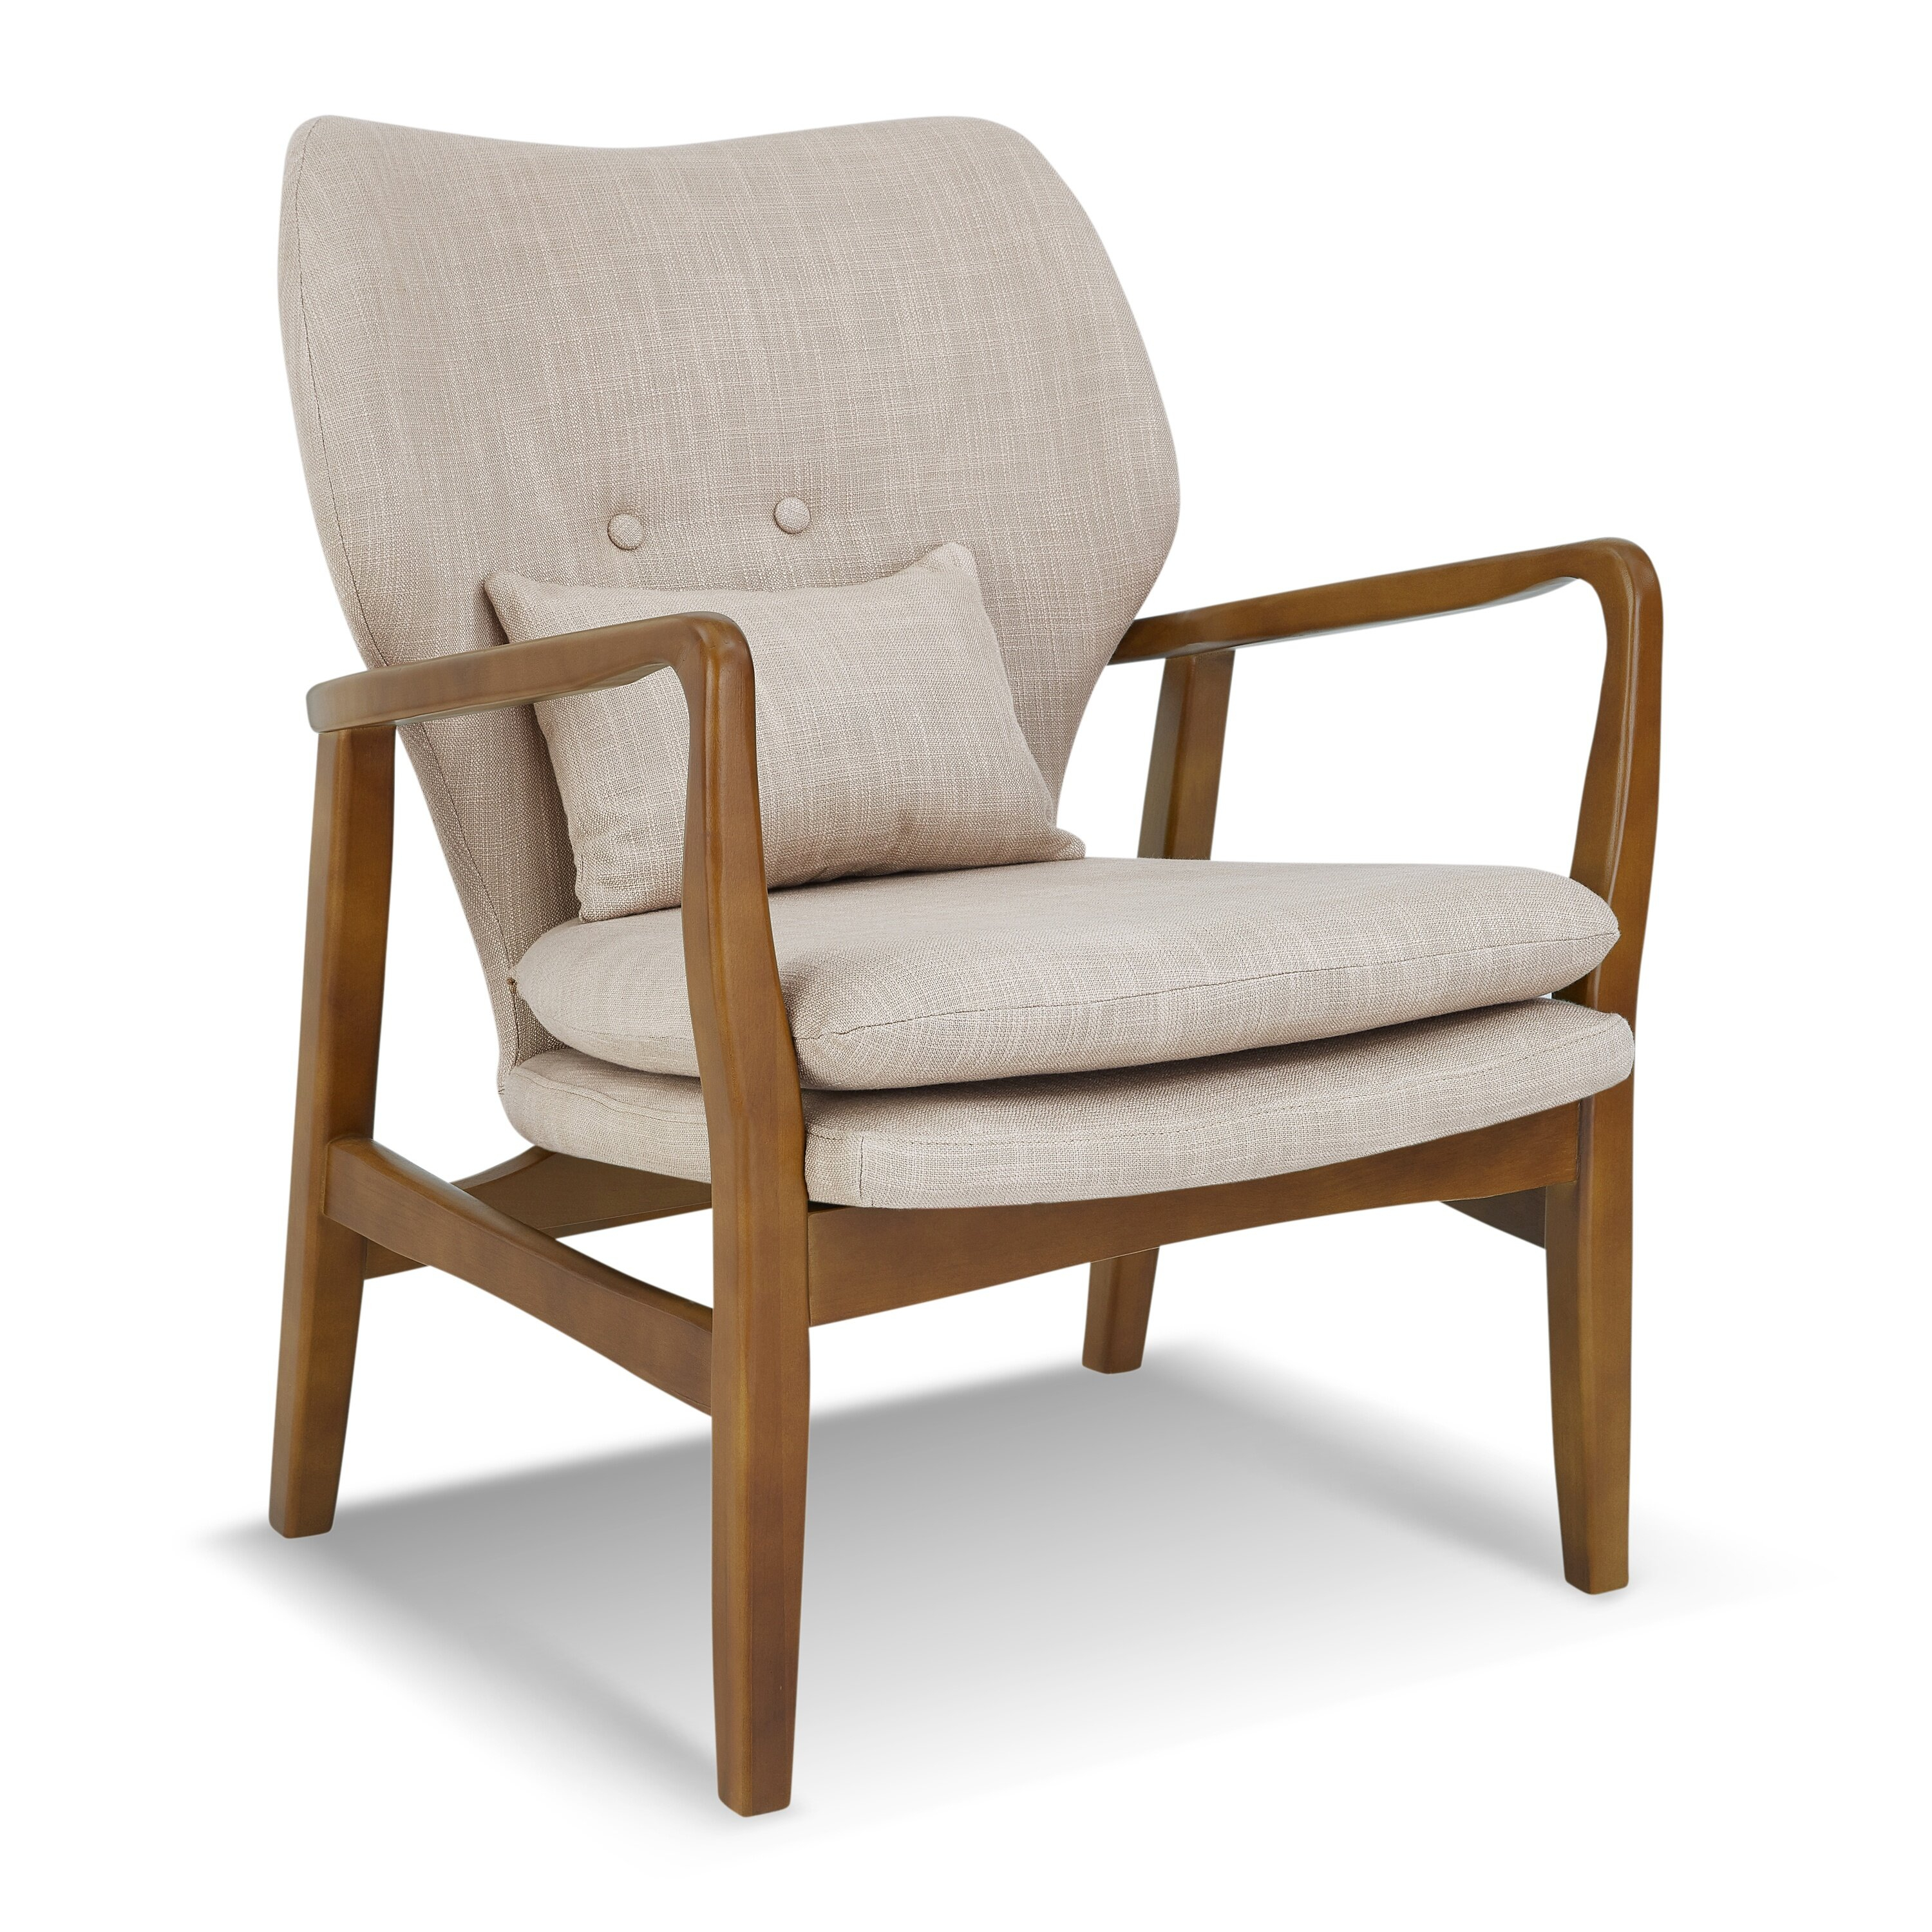 Avenue Six Chair | Wayfair Throughout Carbon Loft Ariel Rocking Chairs In Espresso Pu And Walnut (View 8 of 20)